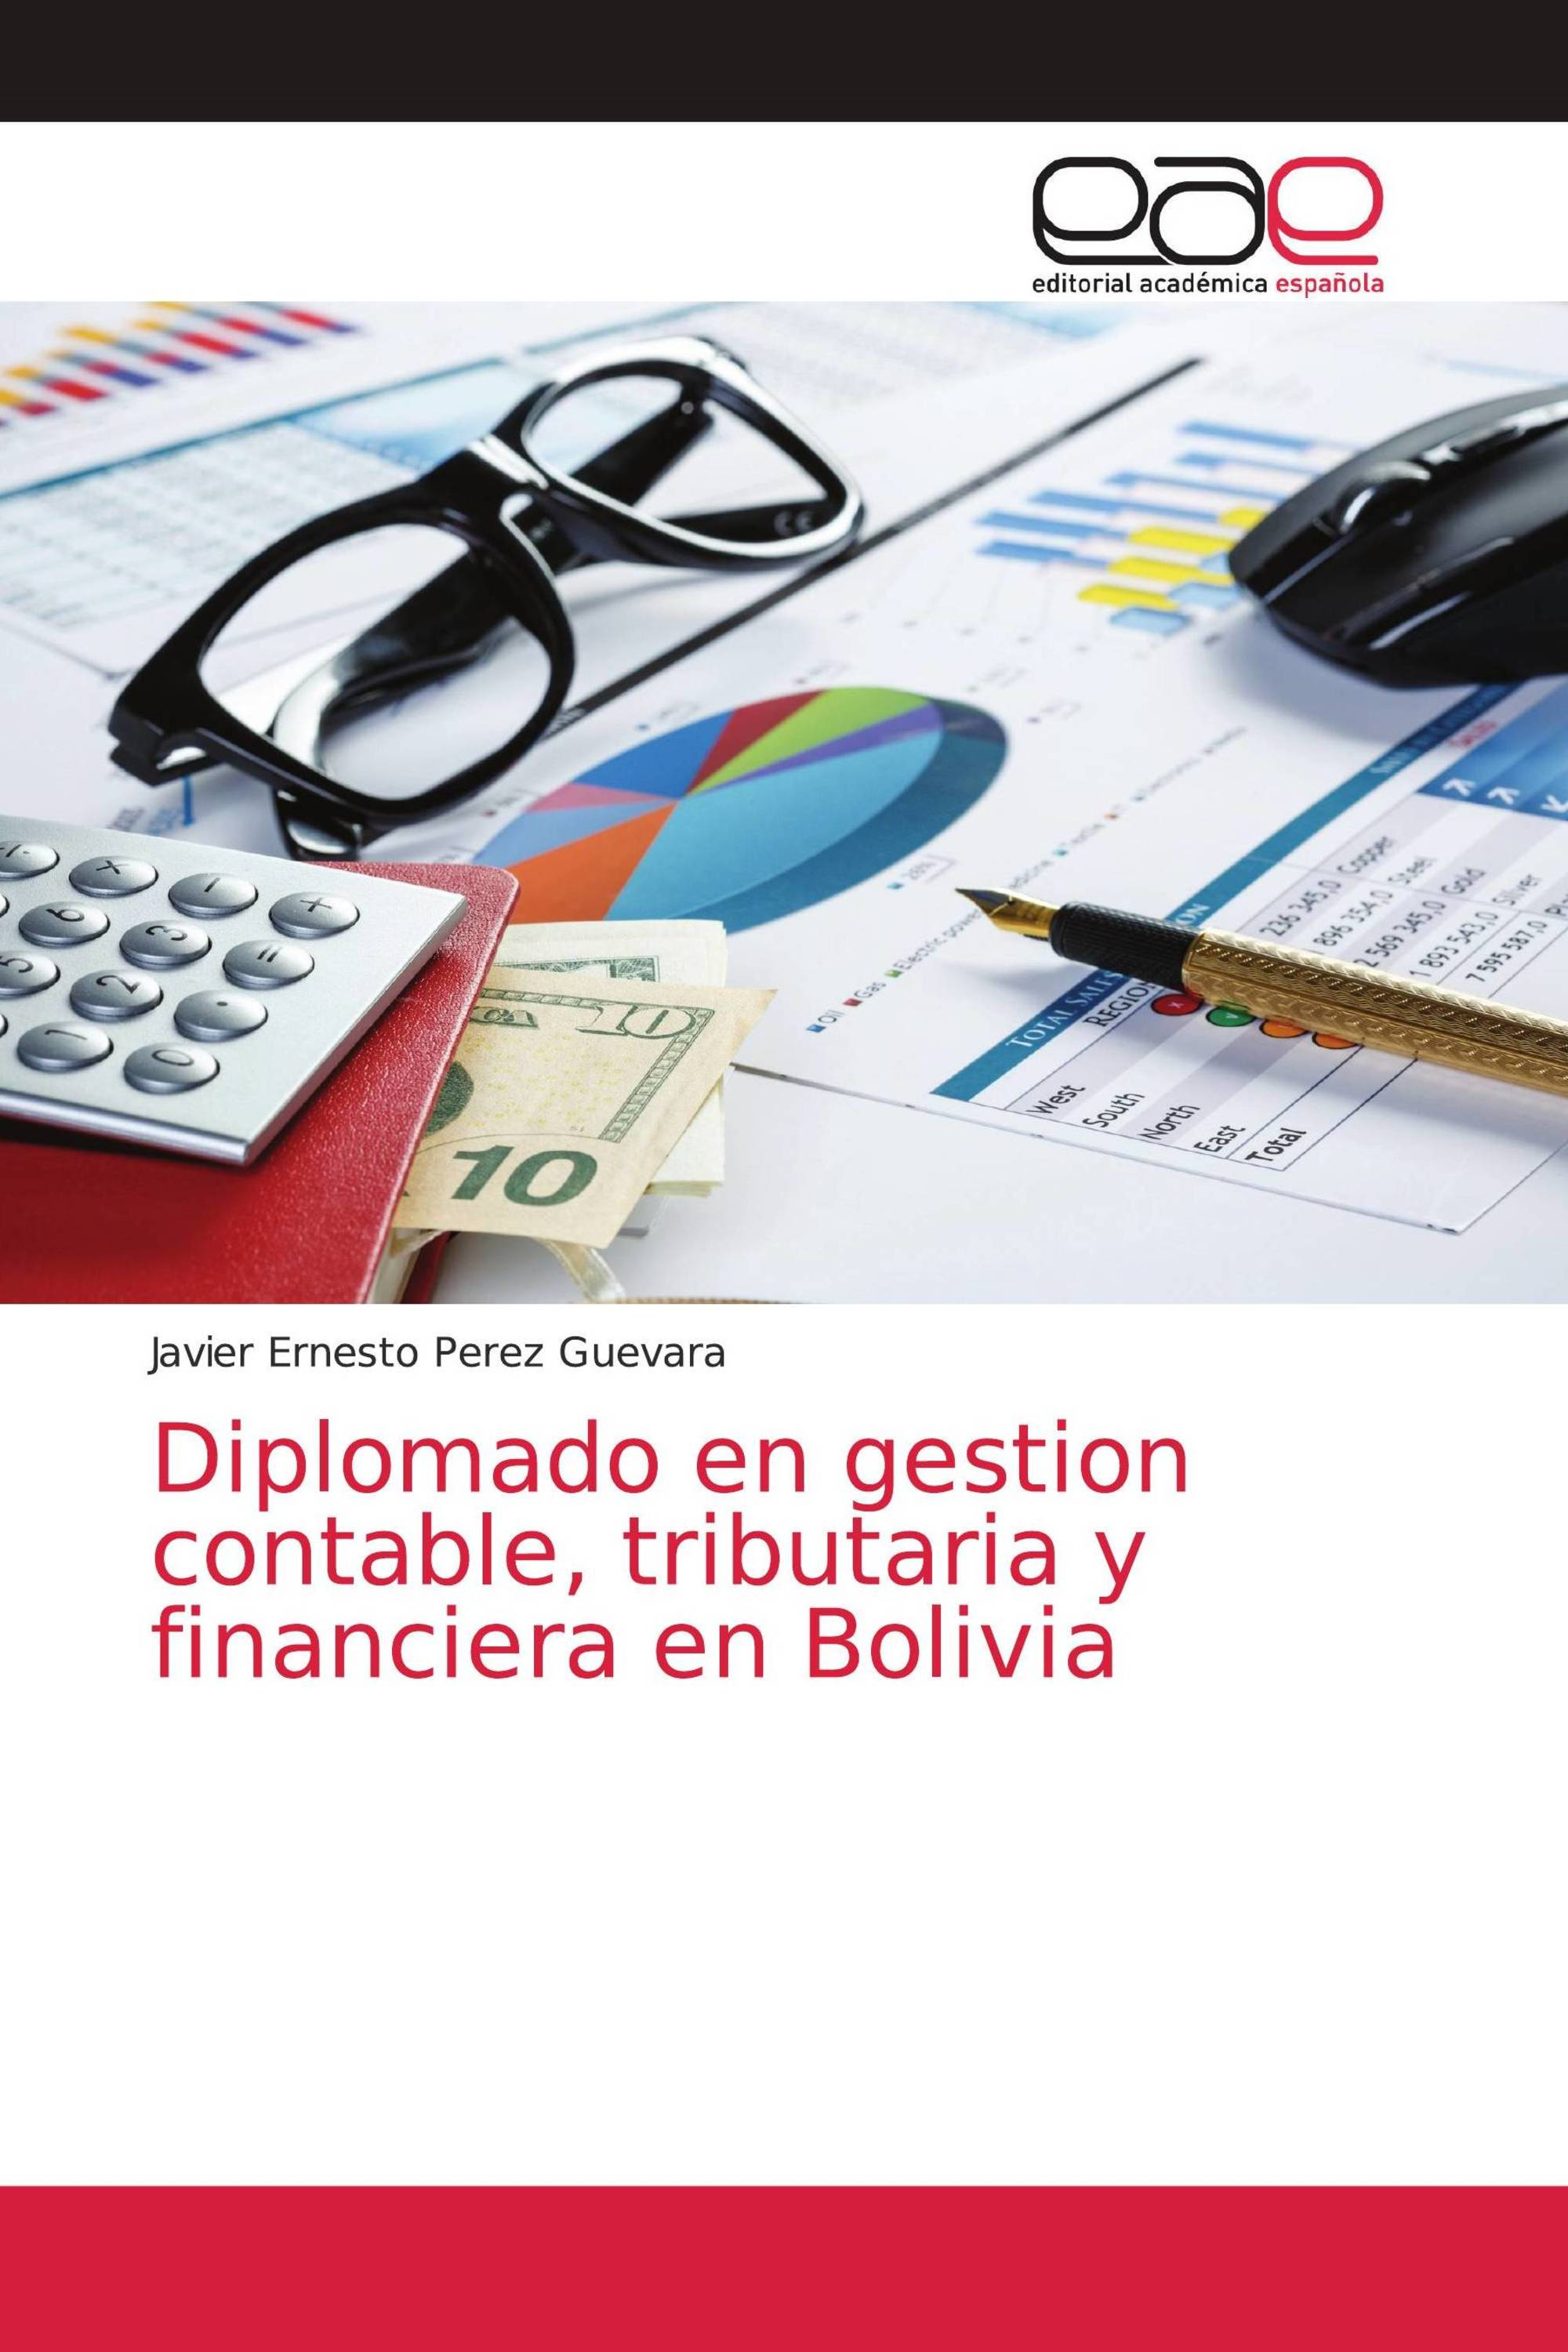 Diplomado en gestion contable, tributaria y financiera en Bolivia